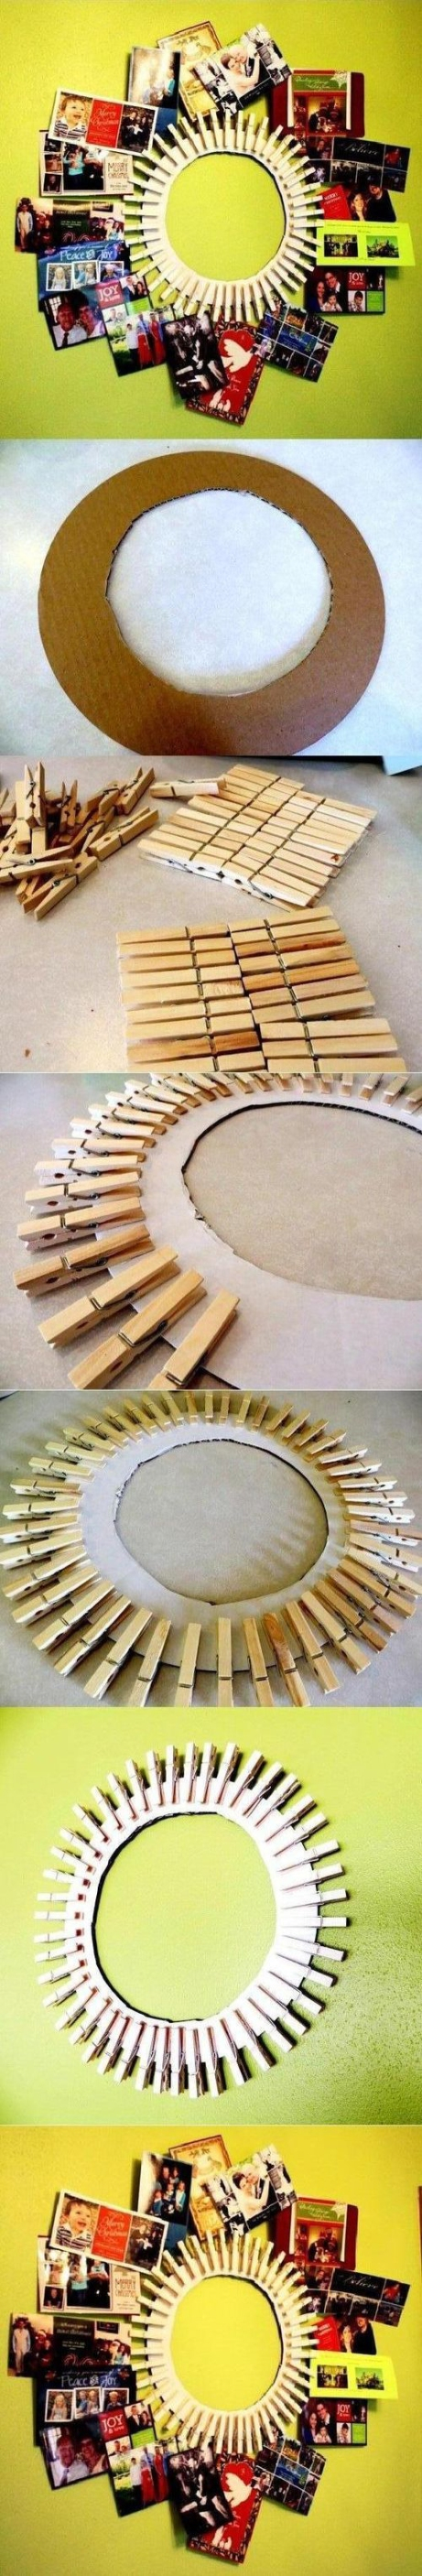 This different approach to a picture frame found on Pinterest is easy to make and prevents clutter. Submitted/Pinterest.